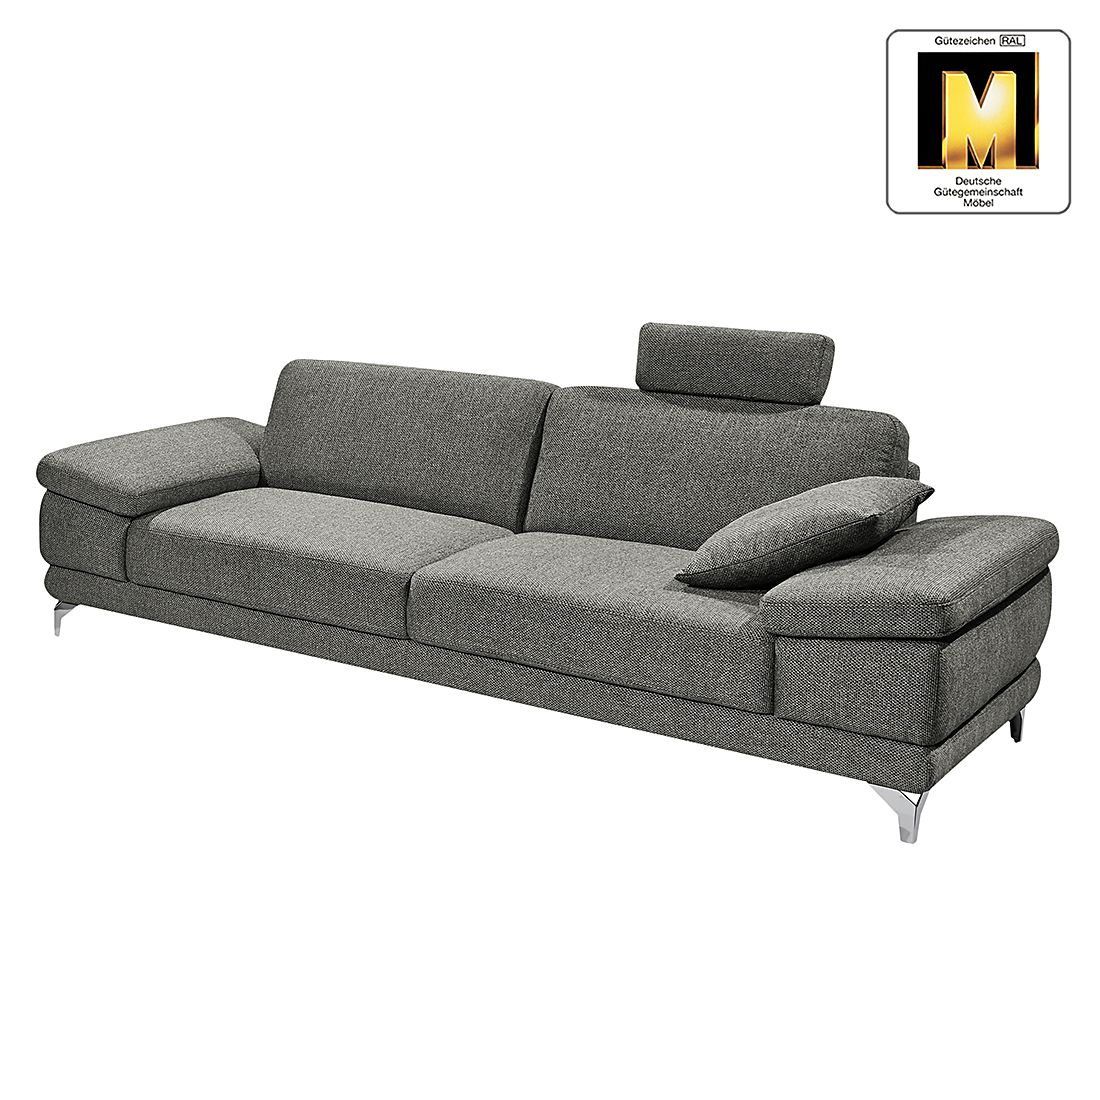 sofa casual line 2 5 sitzer strukturstoff verstellbare armlehnen hellgrau claas claasen. Black Bedroom Furniture Sets. Home Design Ideas